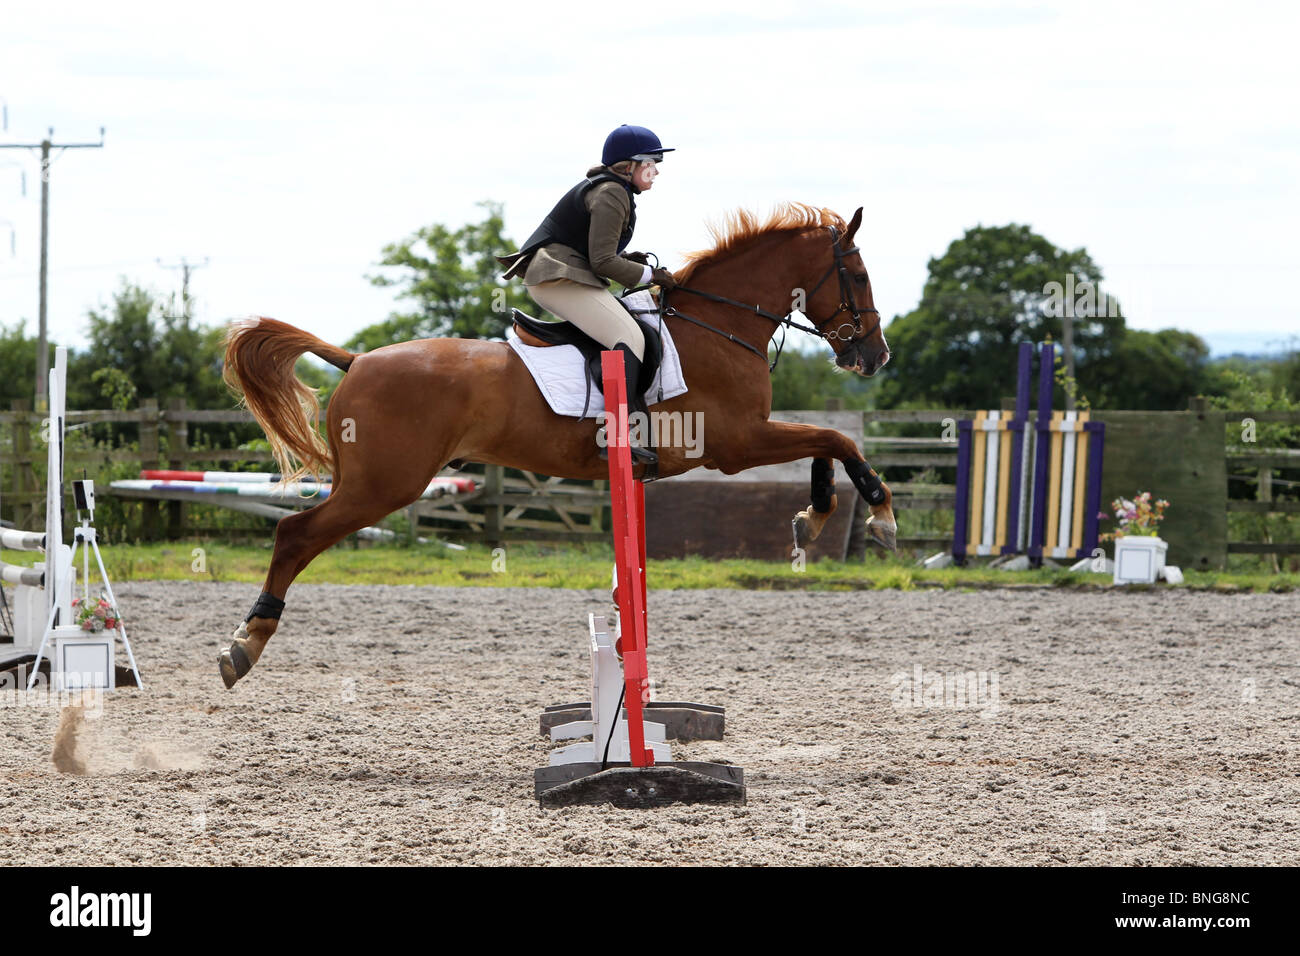 Chestnut Horse Pony Jumping Stock Photo Alamy